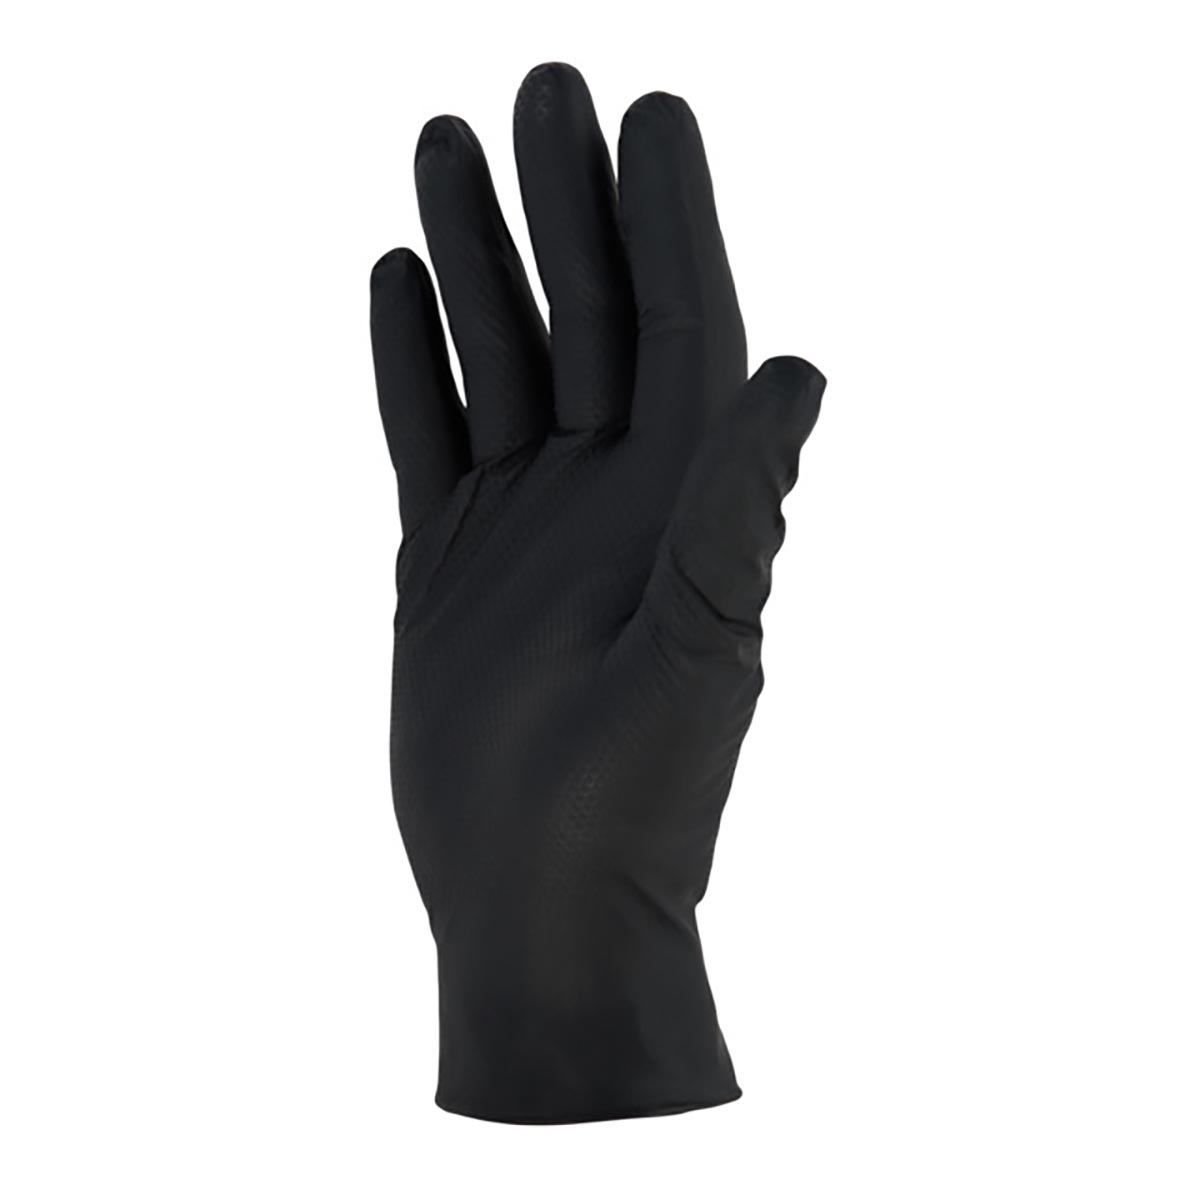 """2XL 94449 60 Pairs// Case 15 Mil 13/"""" Long 5 Packs of 12 Pairs Kimberly-Clark Professional Jackson Safety G80 Nitrile Chemical Resistant Gloves 11 Green"""